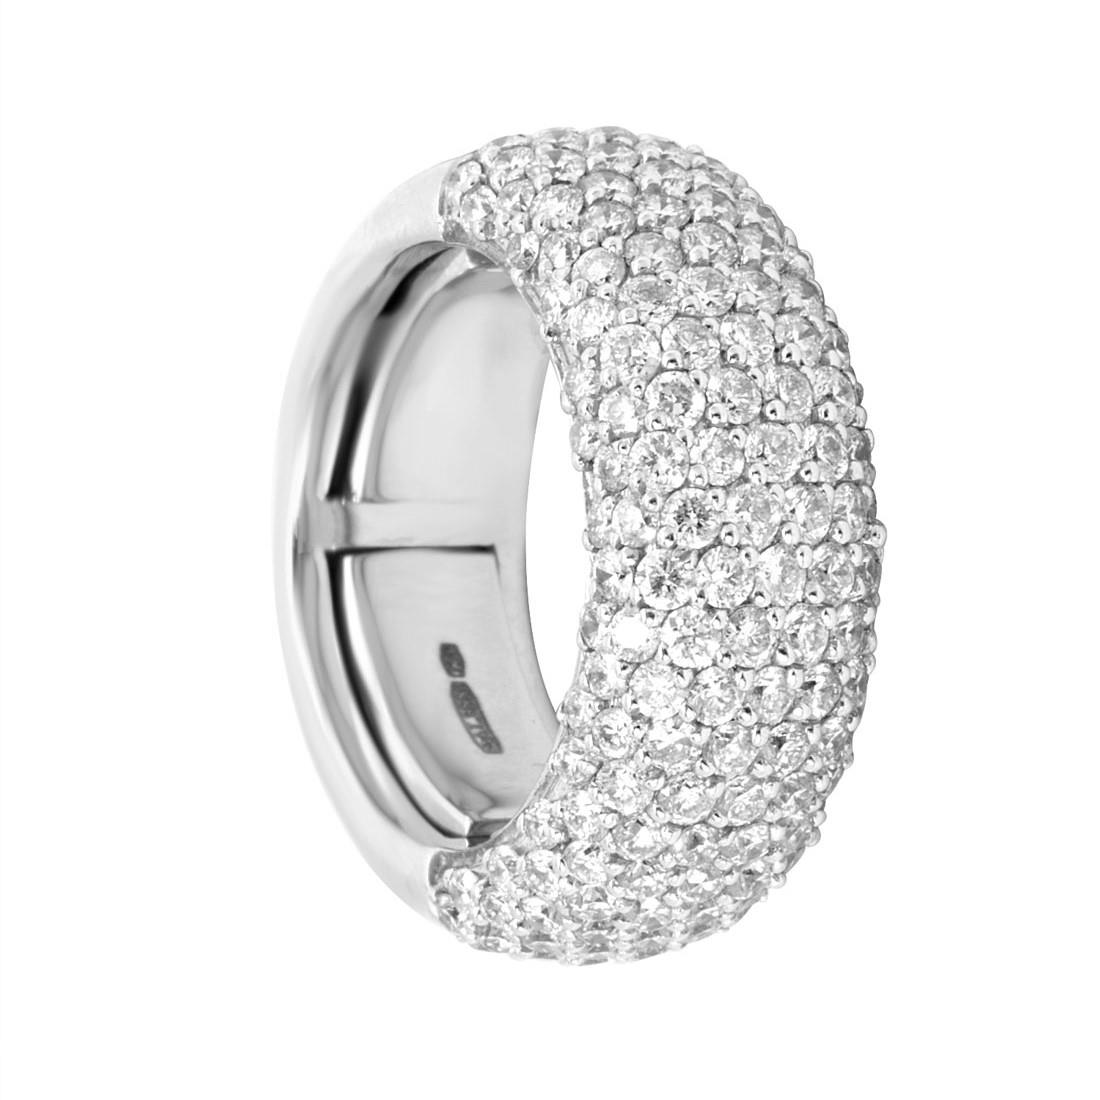 Anello eternity in oro bianco con diamanti ct 2.65 - ALFIERI ST JOHN